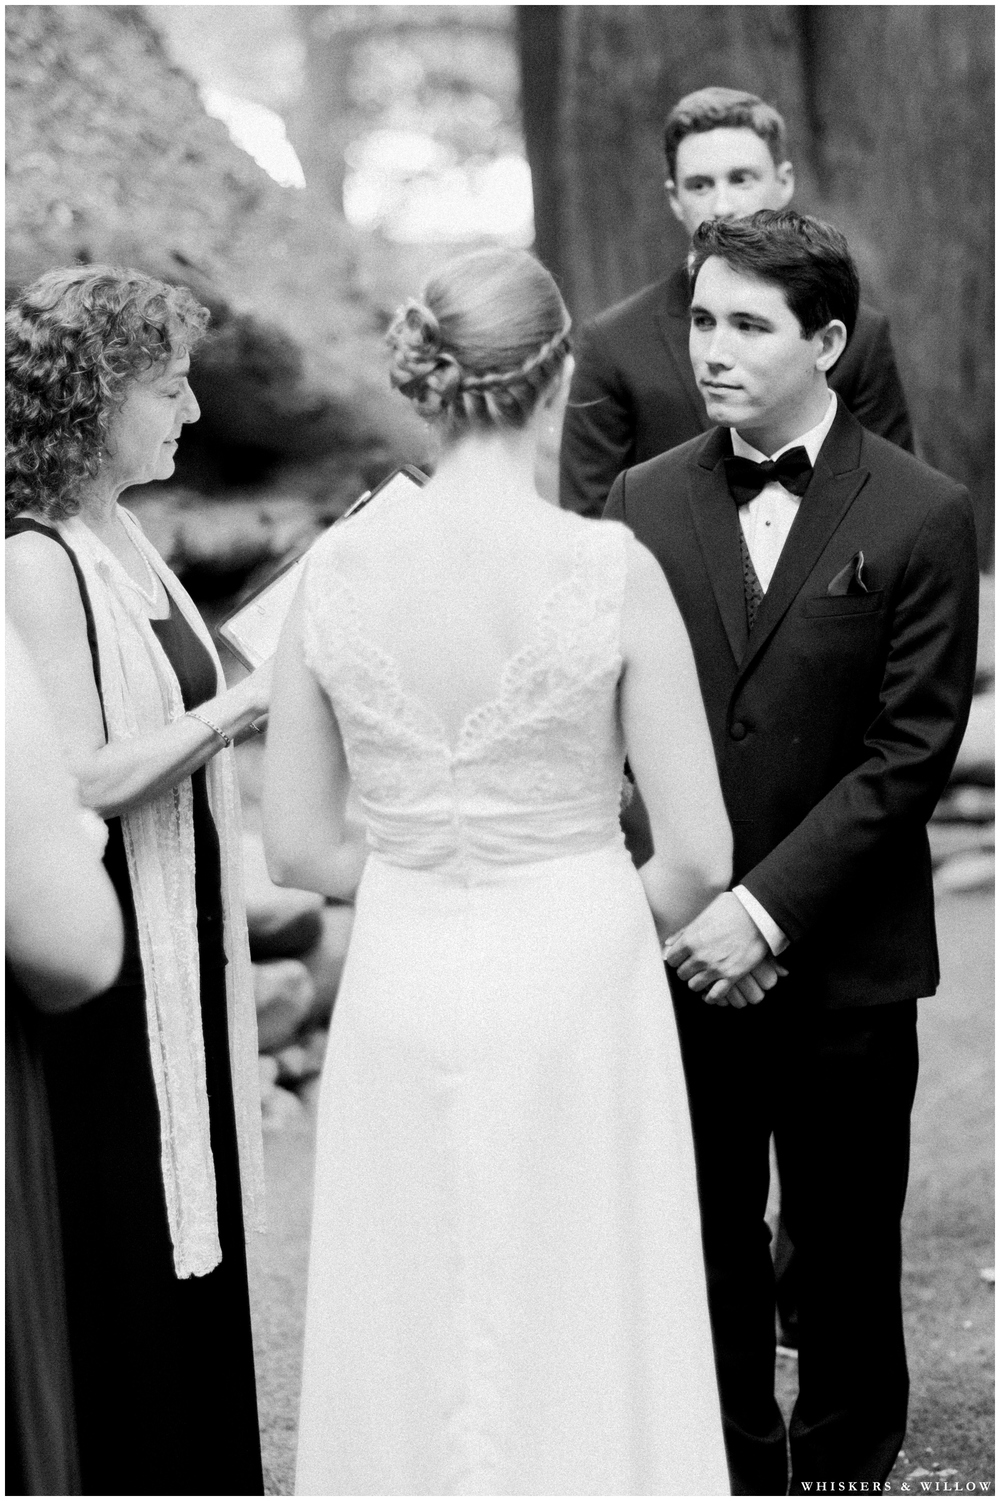 Saratoga Springs Wedding - Forest woodland wedding - classic groom tuxedo - Whiskers and Willow Photography